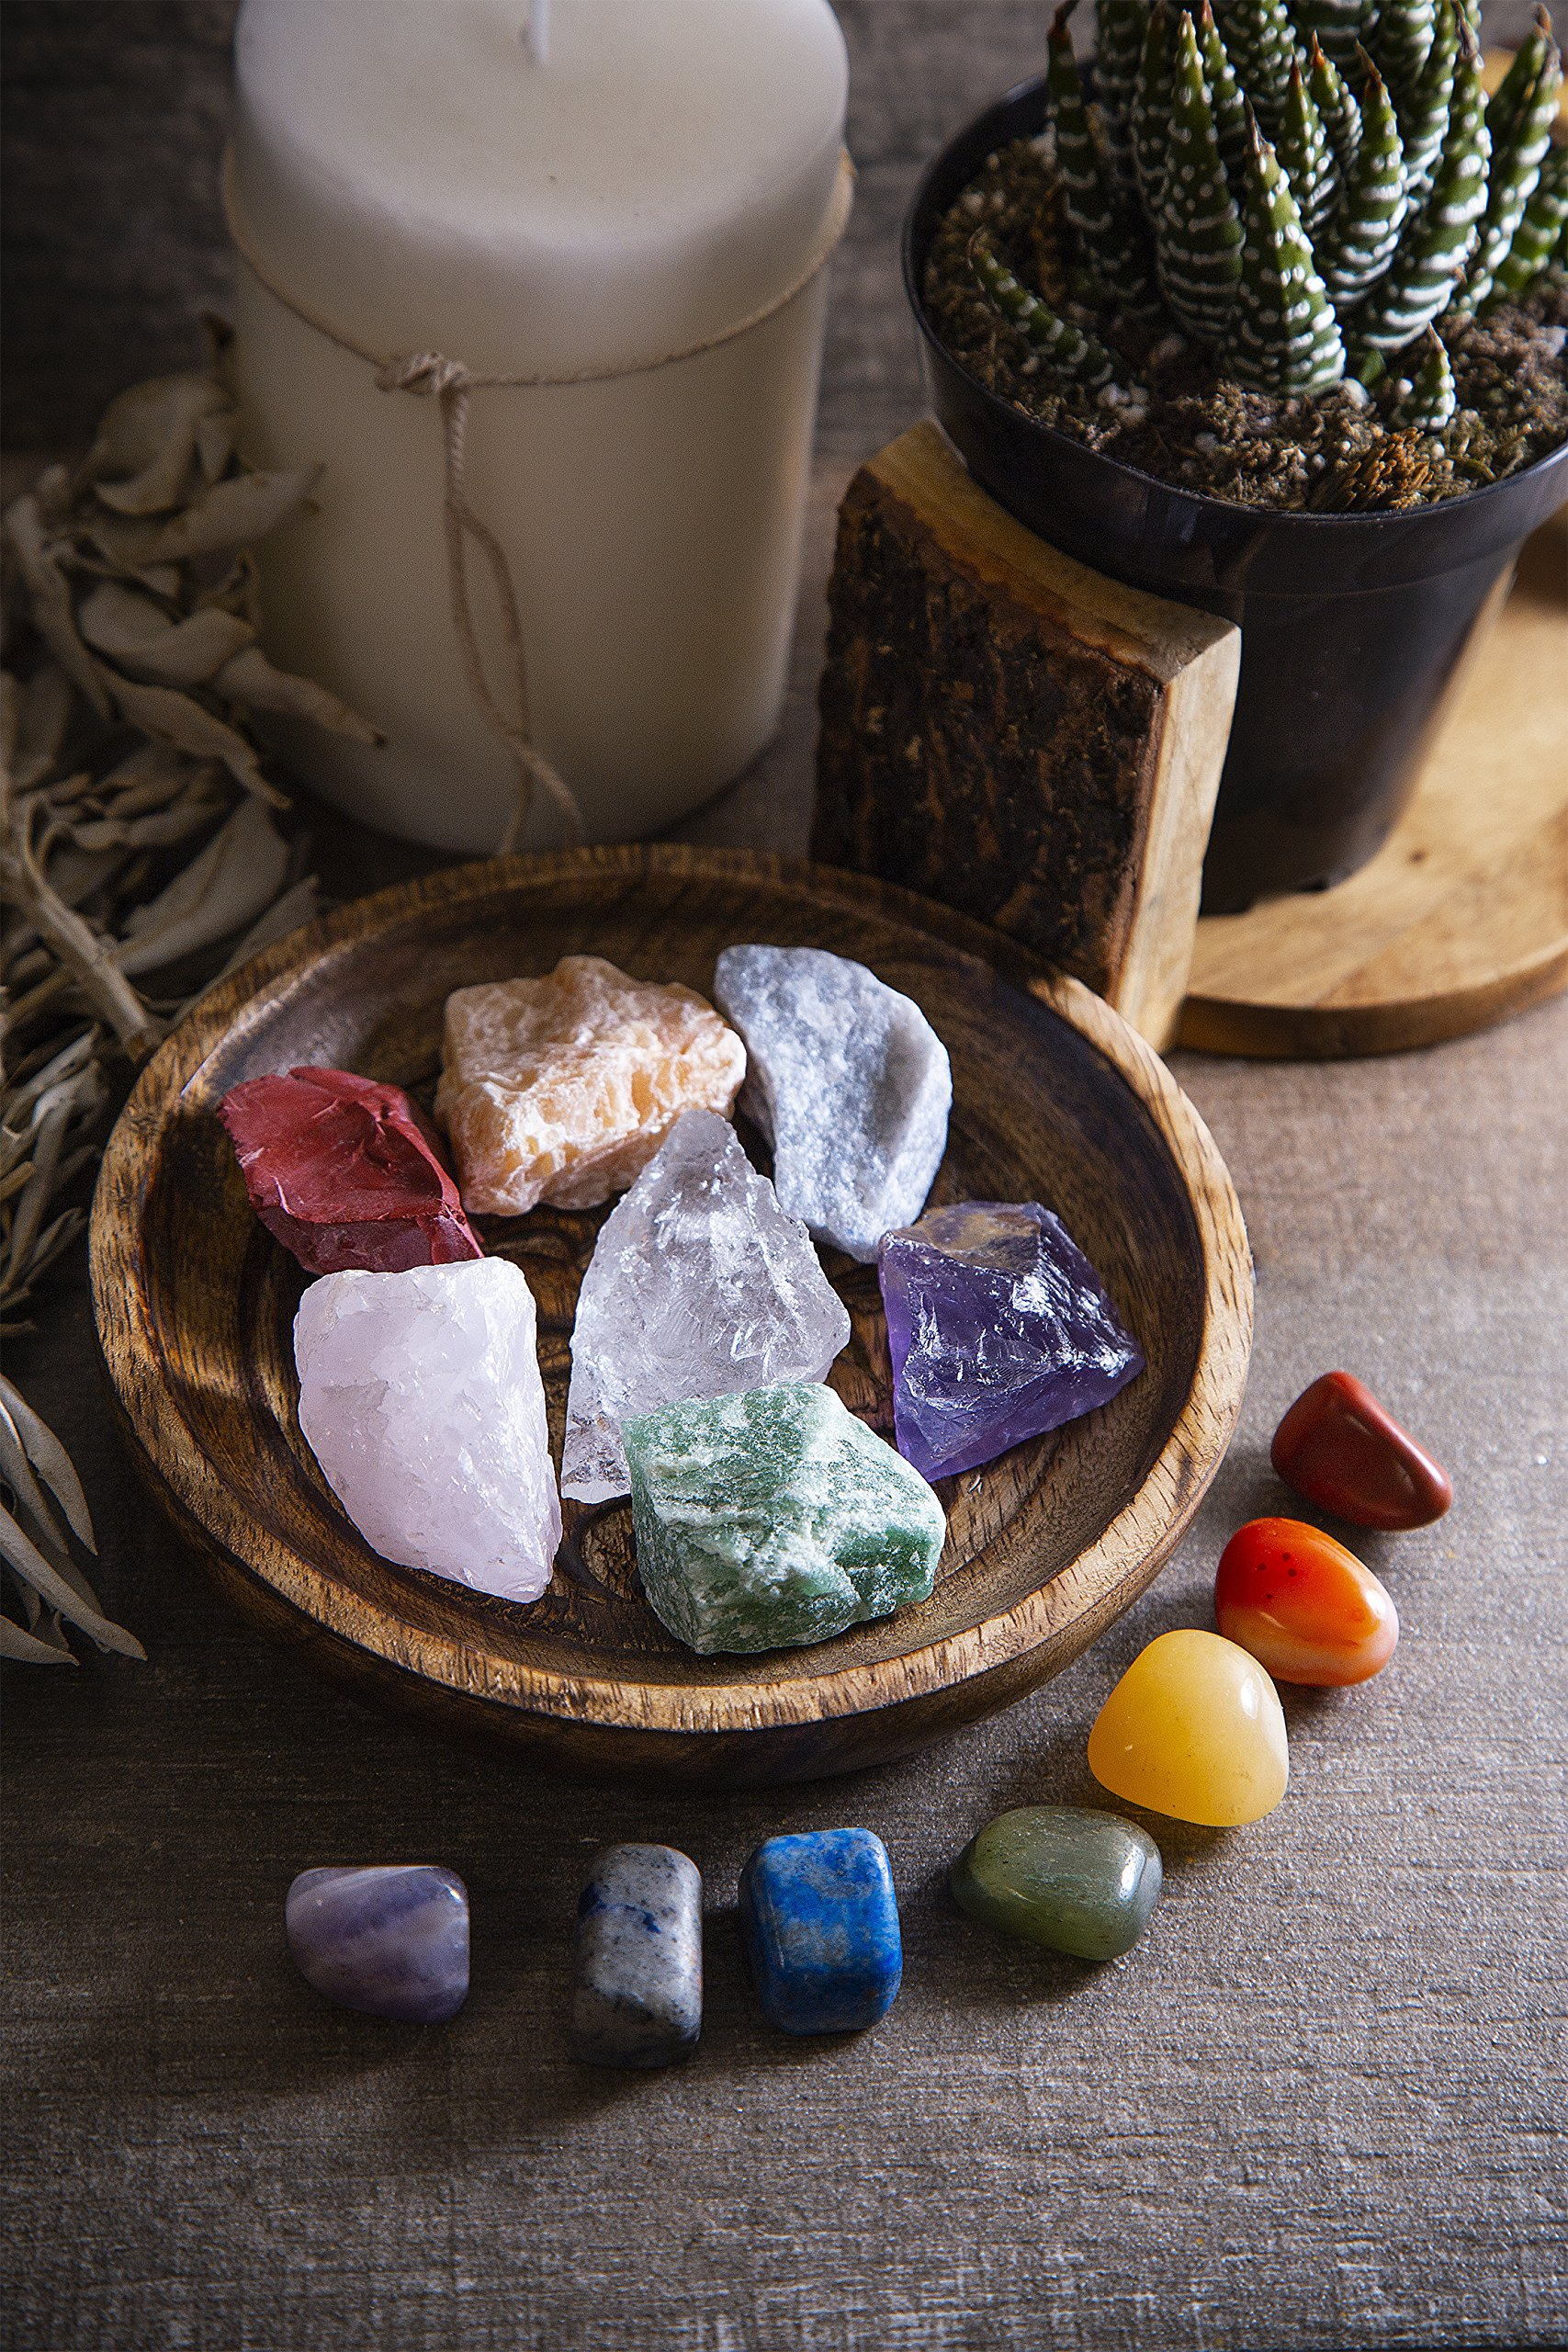 Beverly Oaks Energy Infused Natural Raw Healing Crystals and Tumbled Stones - Chakra Stones For Crystal Healing - The Ultimate Chakra Kit with Huge Variety of Gemstones by Beverly Oaks